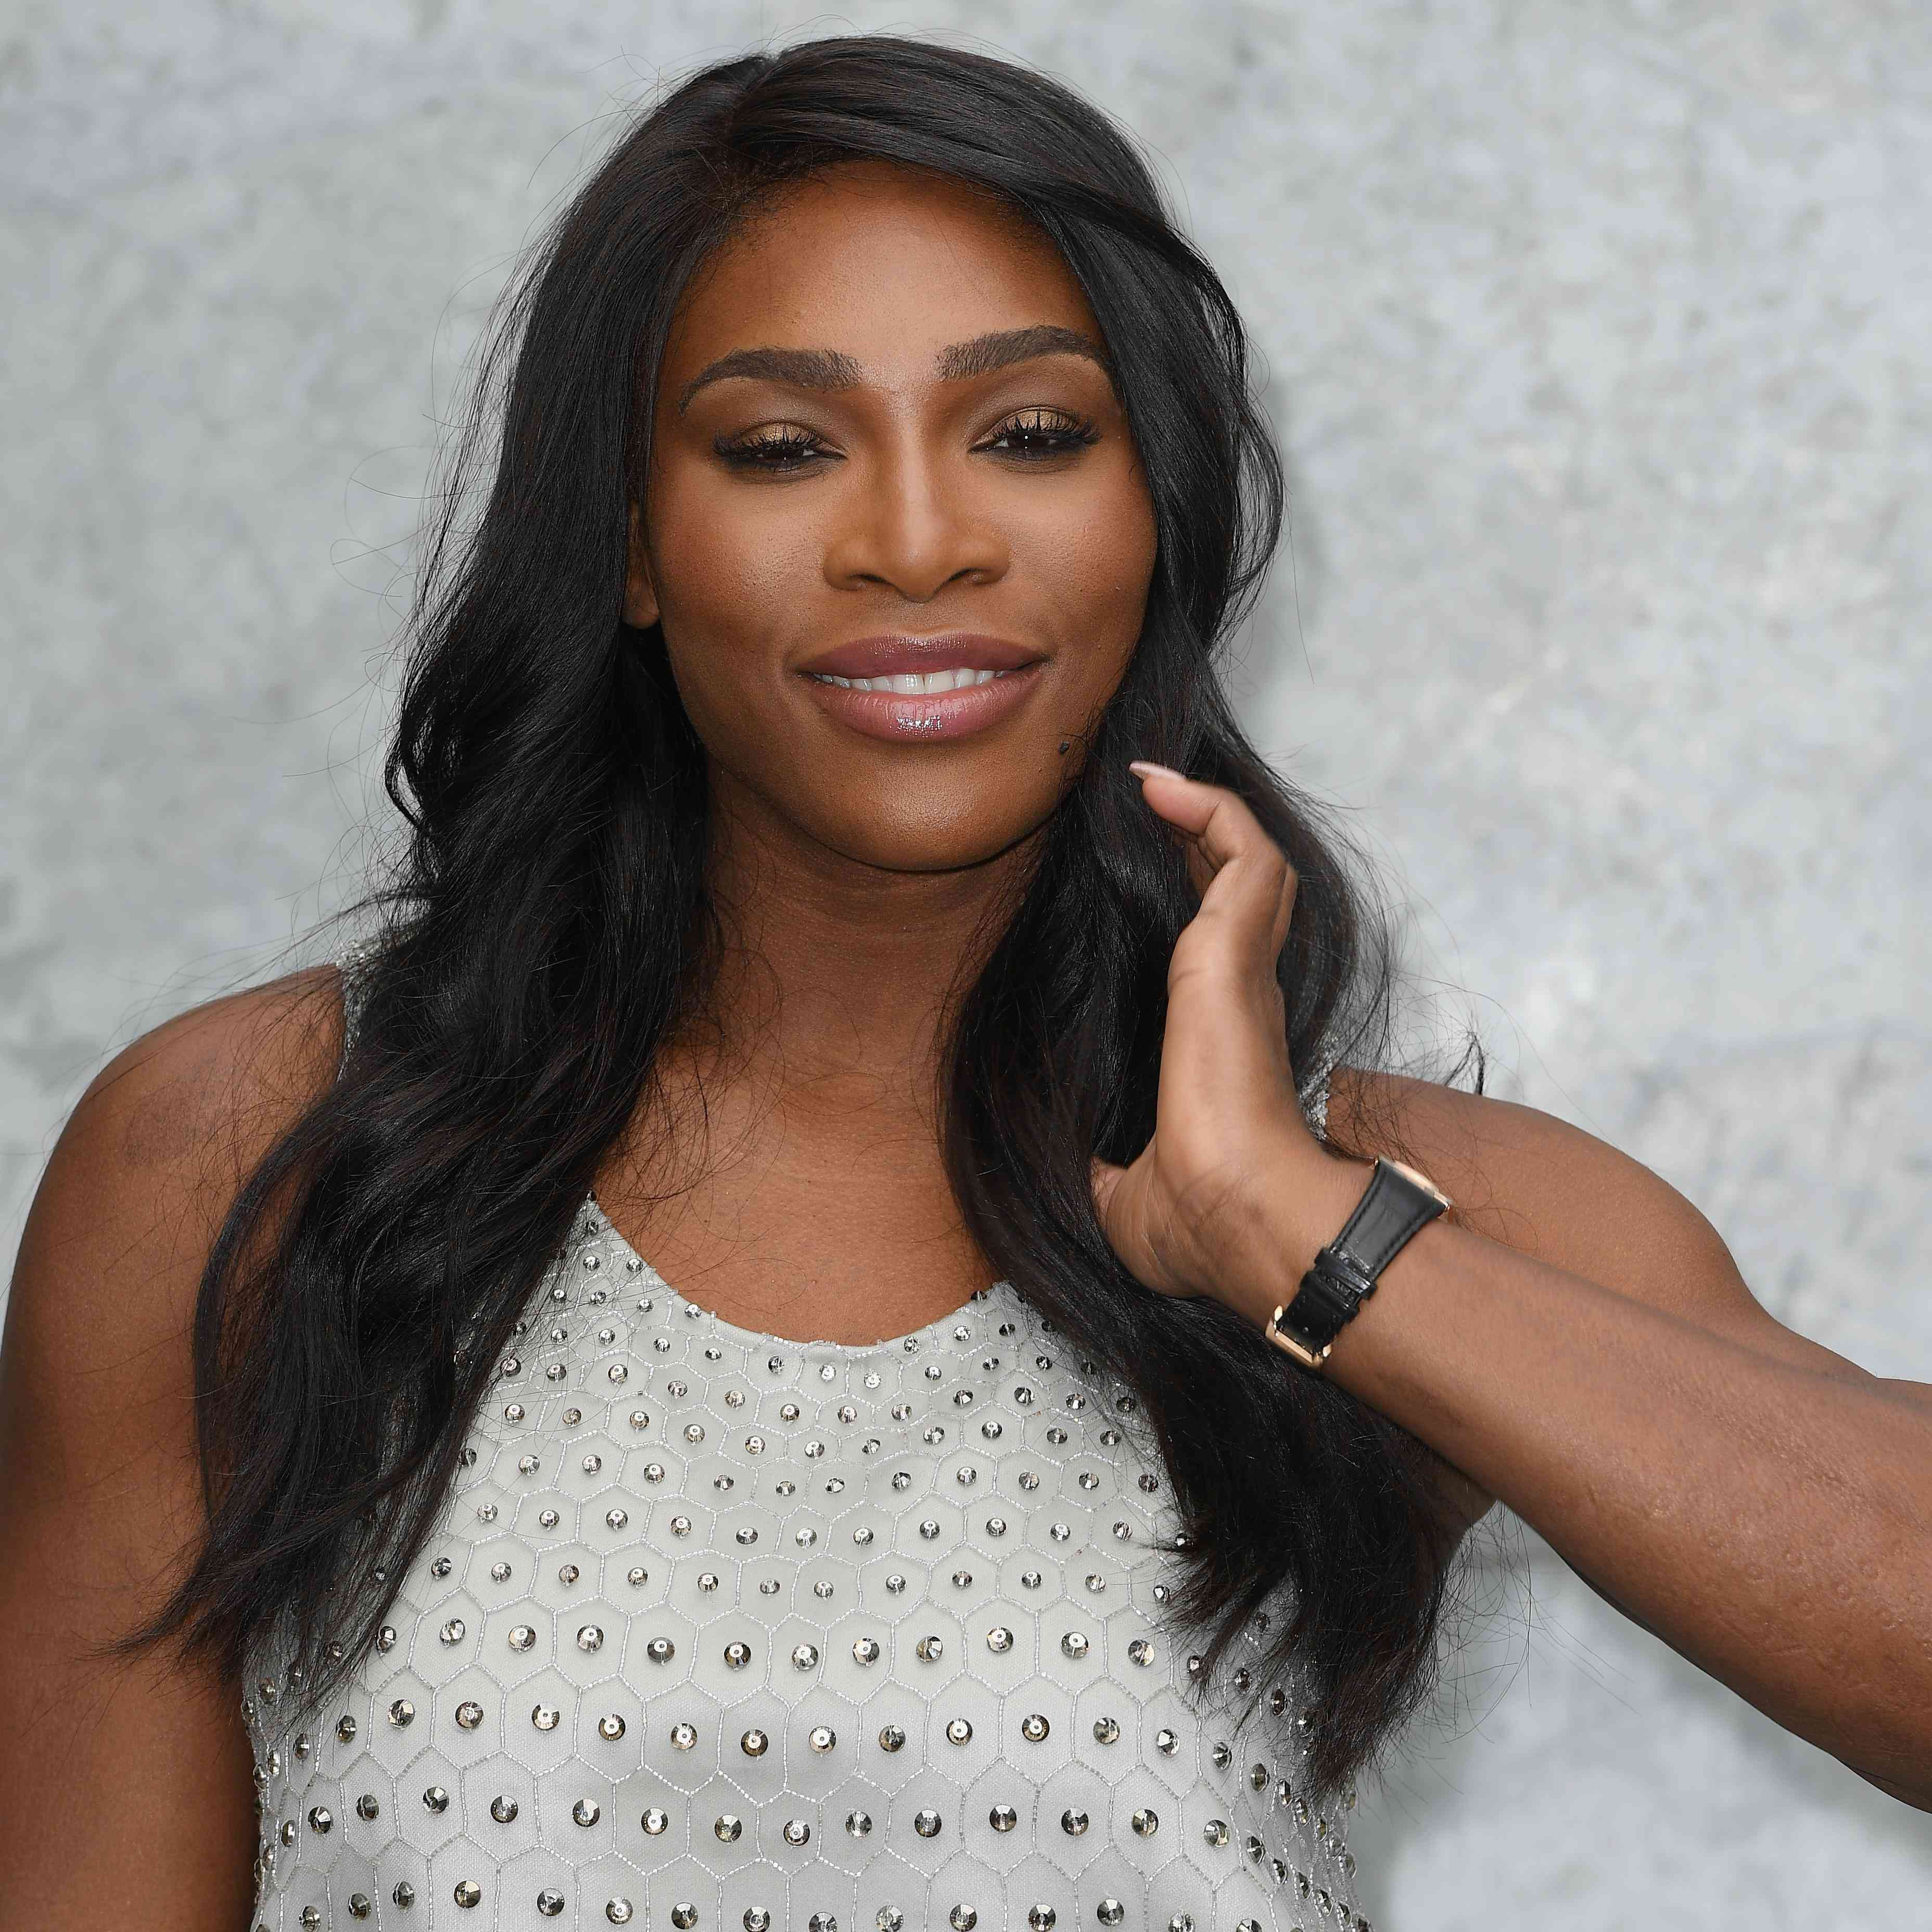 Picture Of Serena Williams Engagement Ring: Serena Williams FINALLY Shows Off Her Engagement Ring